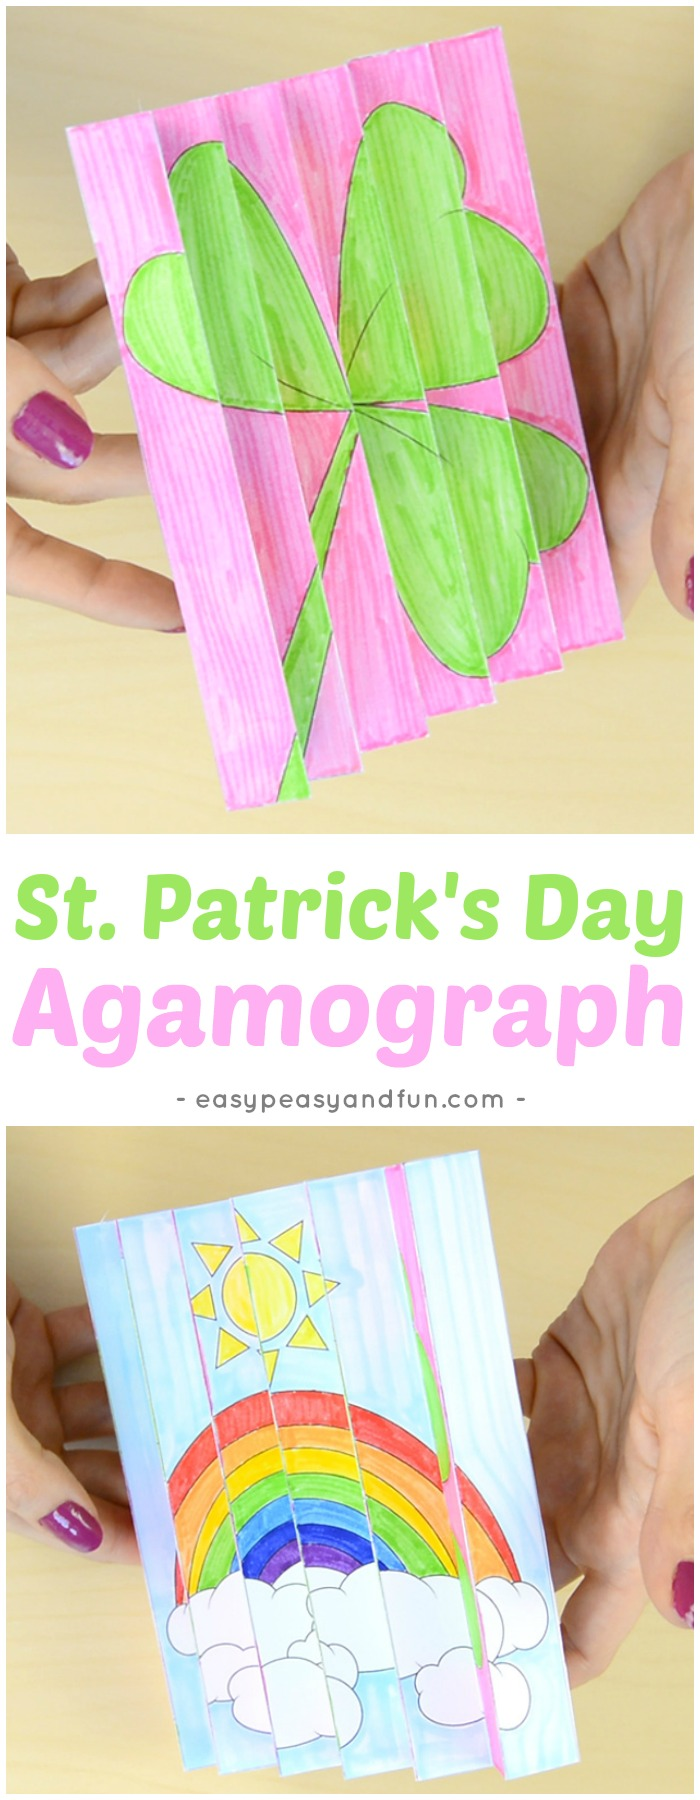 St. Patrick's Day Agamograph Template for Kids to Make #stpatricksdaycrafts #papercrafts #crafttemplate